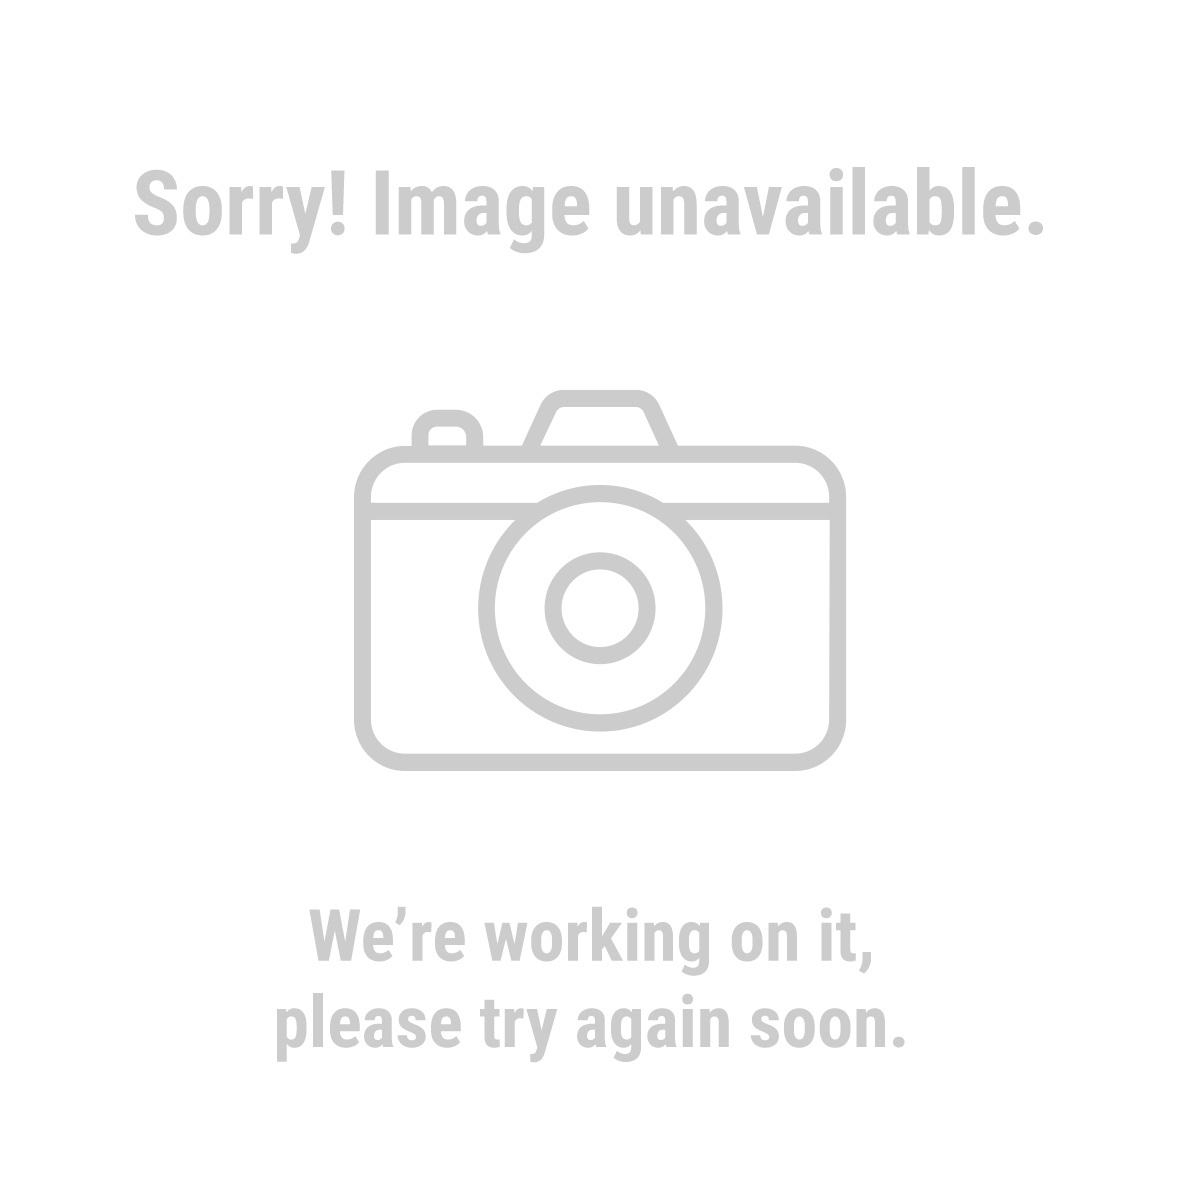 HFT 60473 29 ft. 4 in. x 49 ft. Blue All Purpose/Weather Resistant Tarp